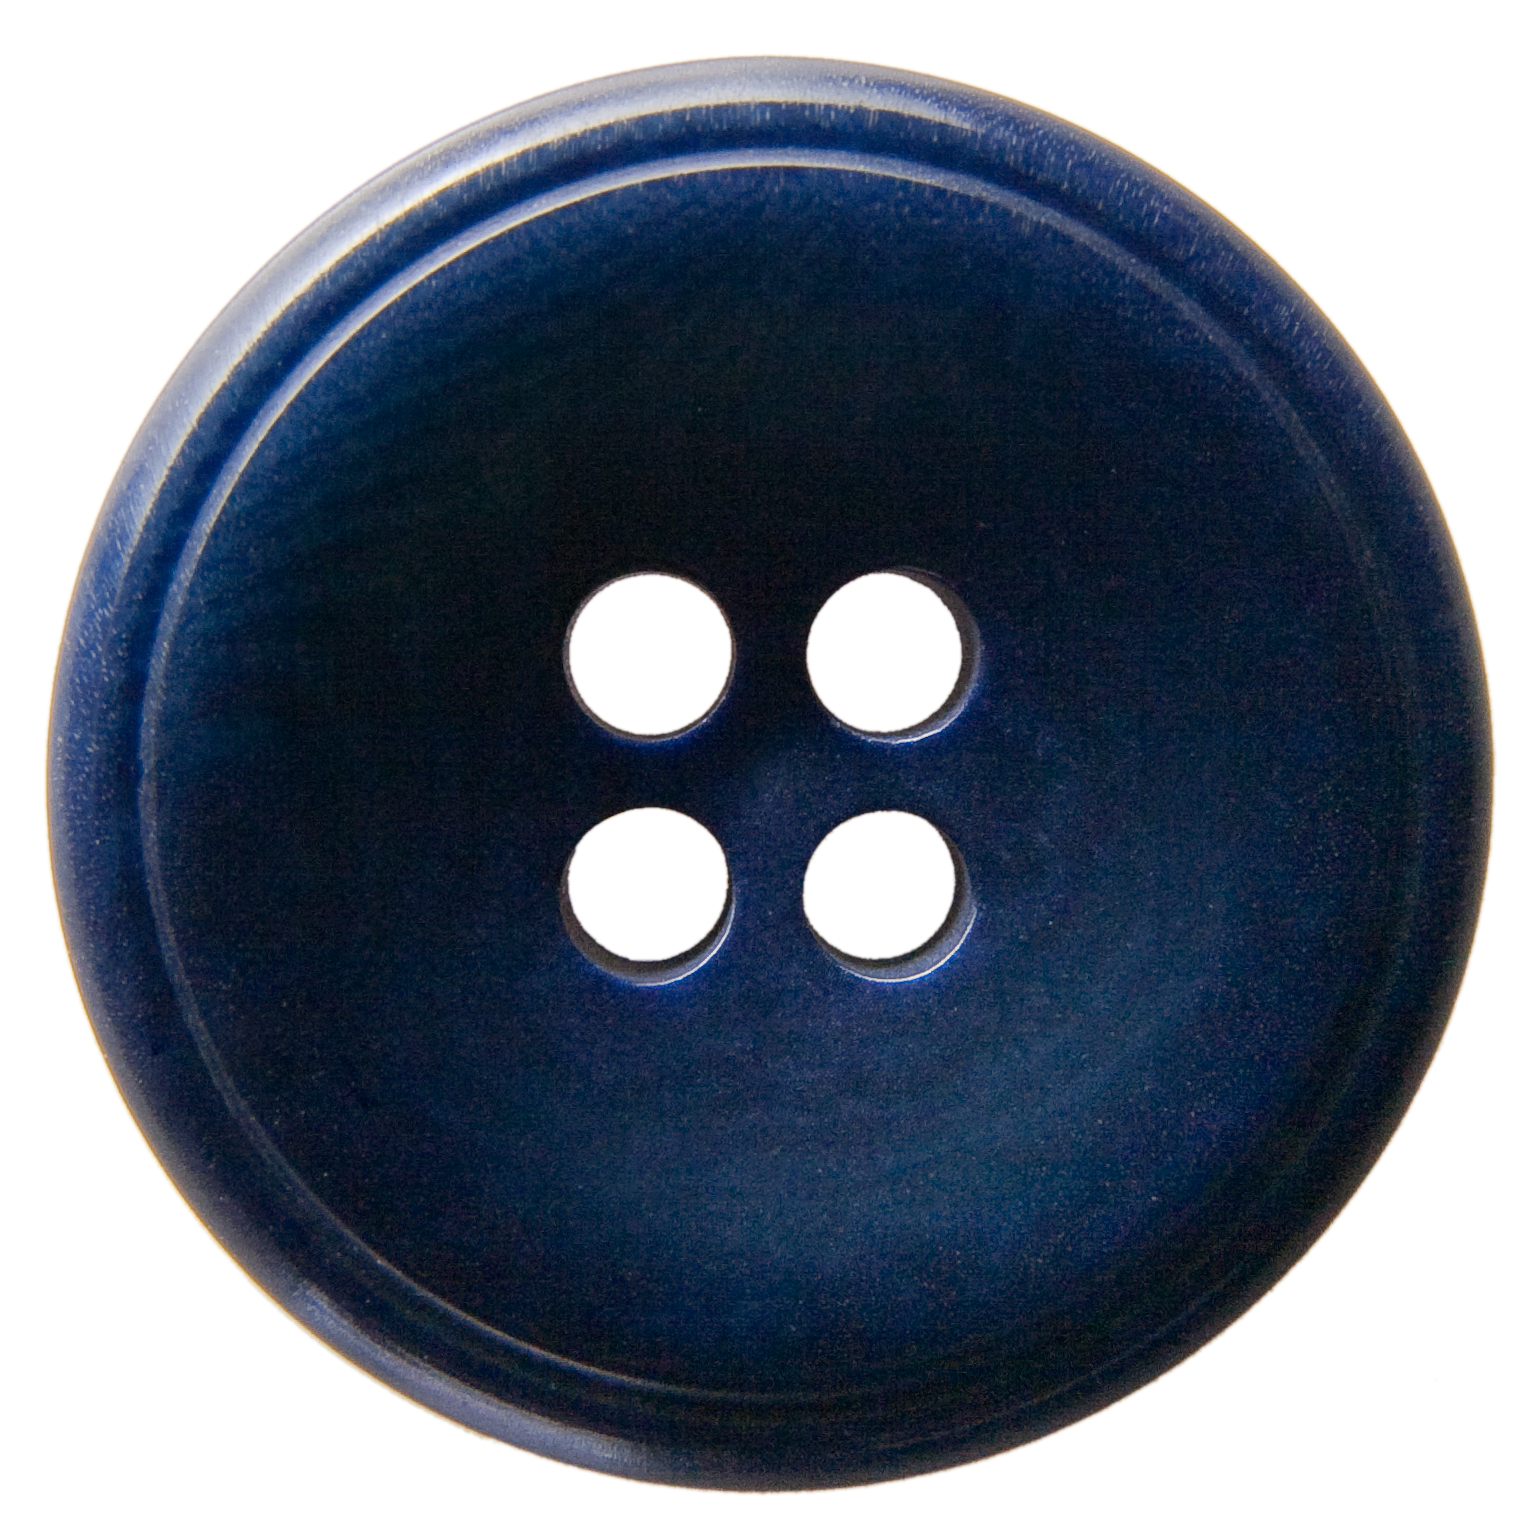 How Are Your Corozo Buttons Made A Short History And Some Basic Facts